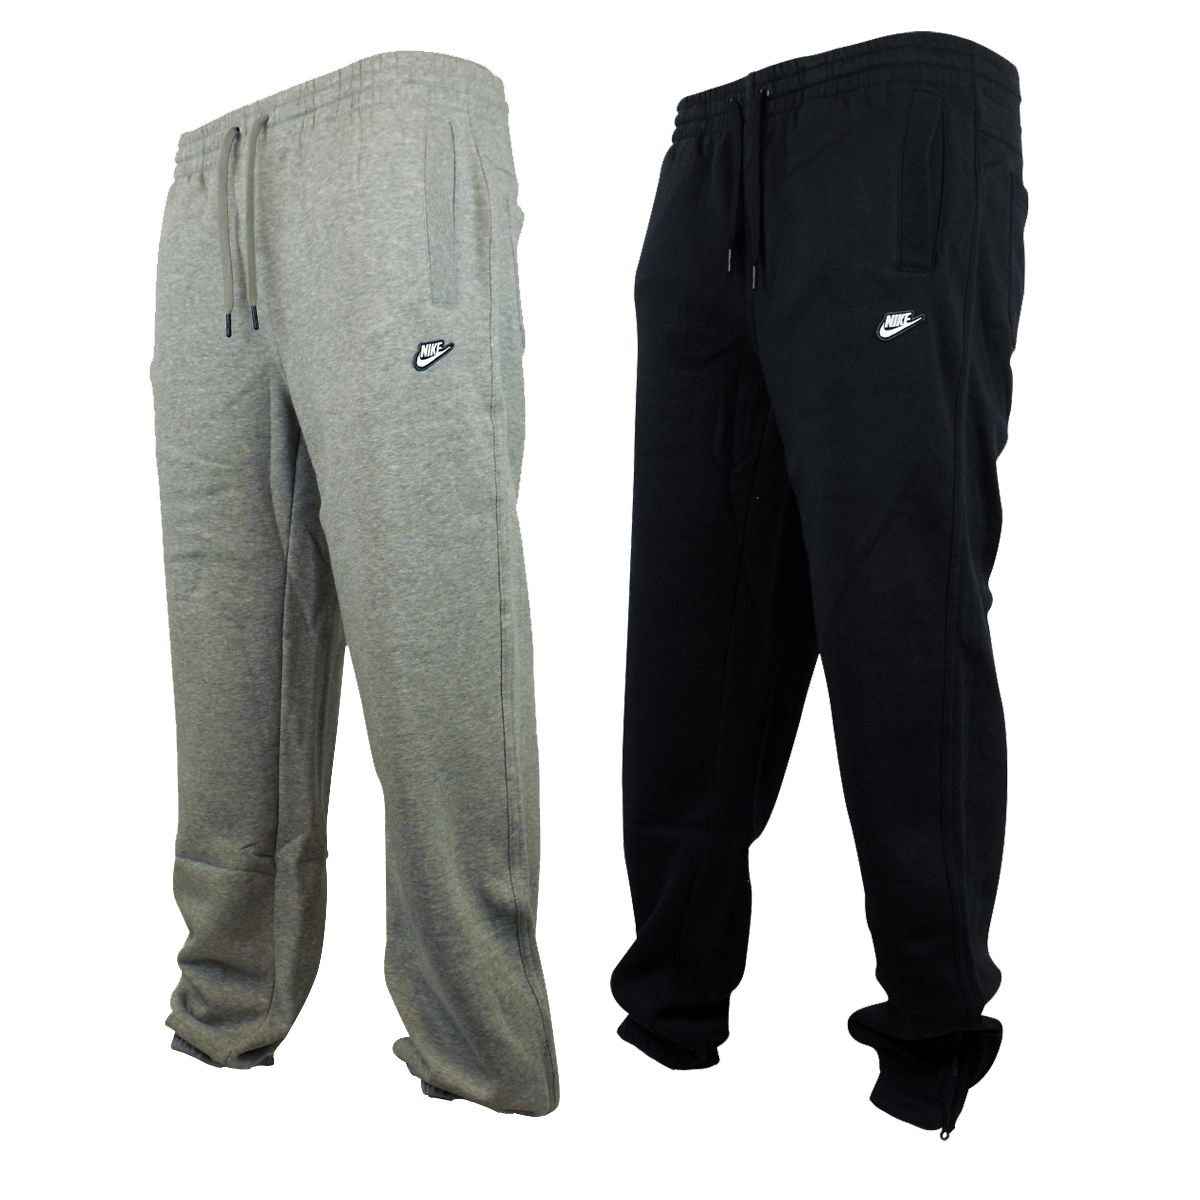 Shop Sweatpants & Joggers for Men at American Eagle. Comfort is crucial and our fleece joggers & sweatpants look as good as they feel. Free shipping on orders of $50 or more.